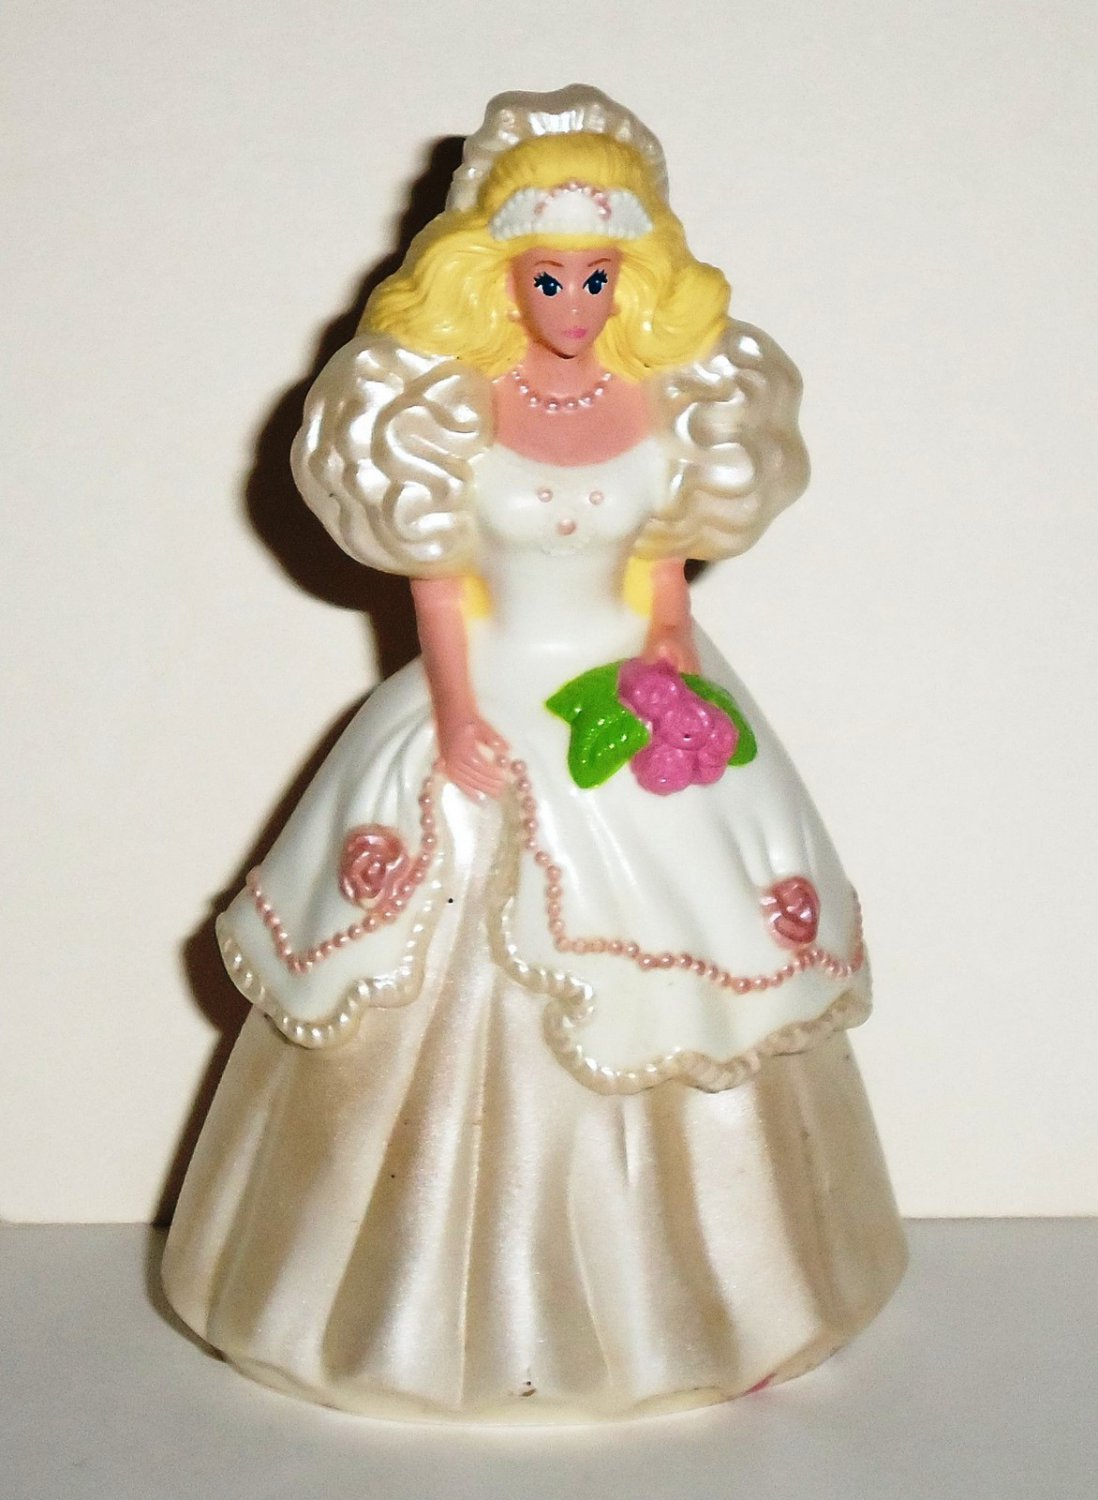 Barbie Doll Cake Accsesorie